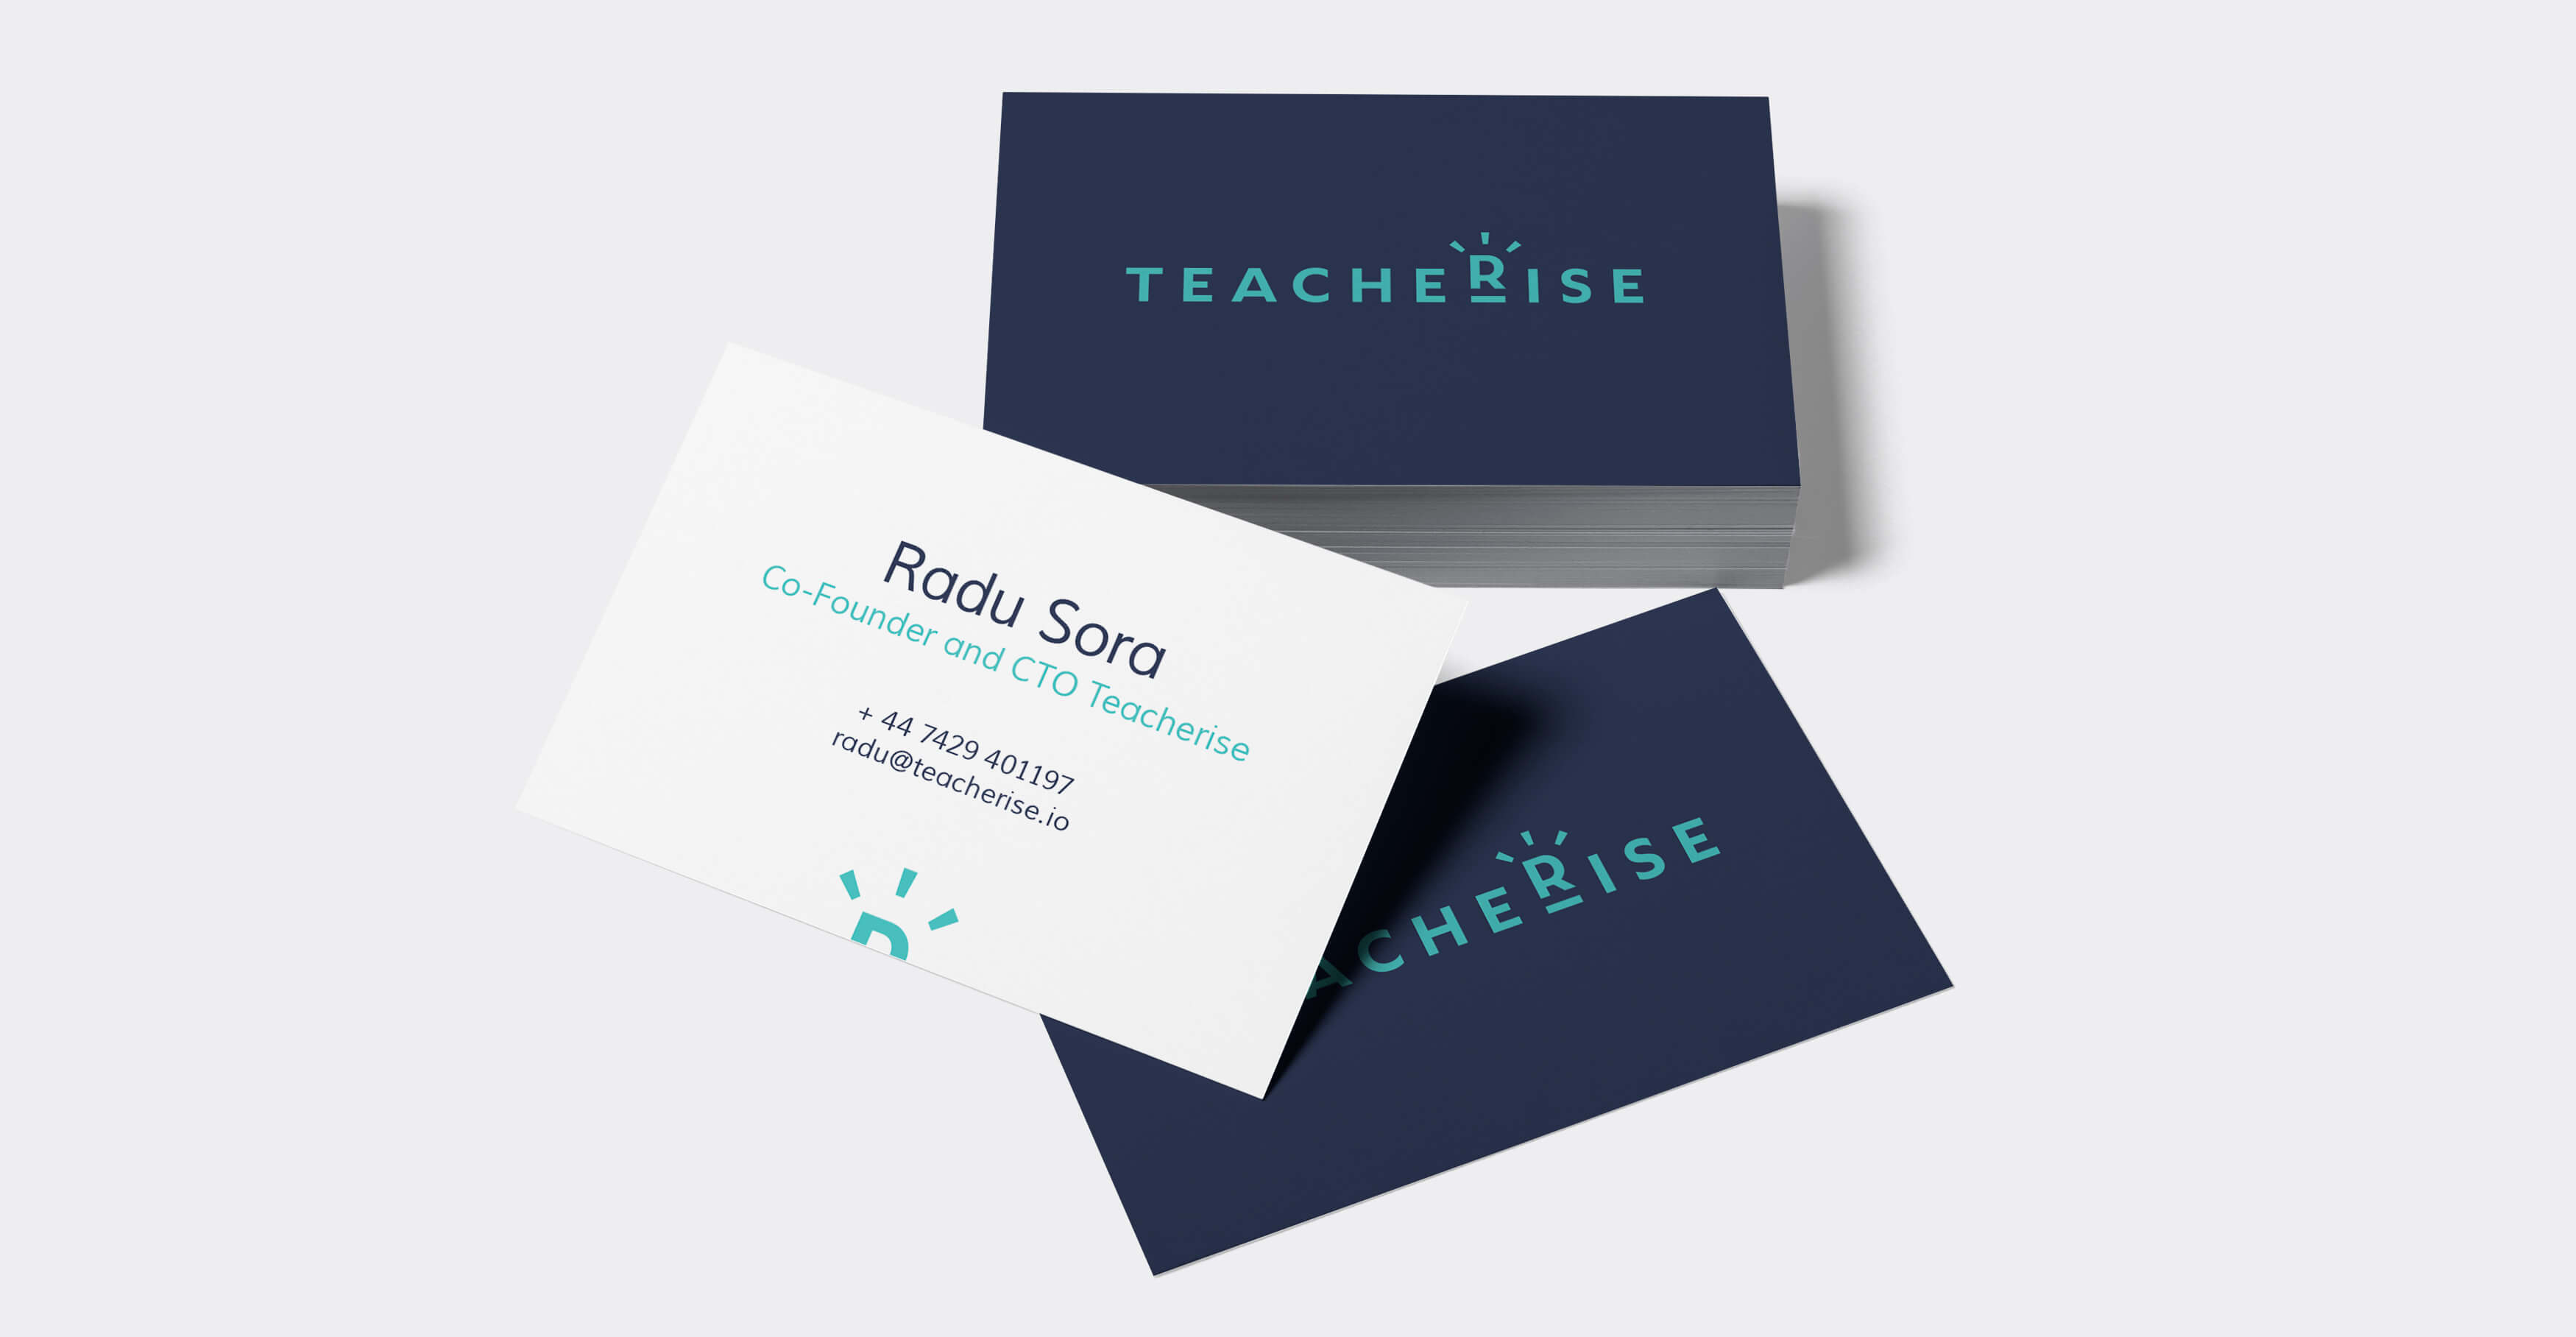 Teacherise business cards